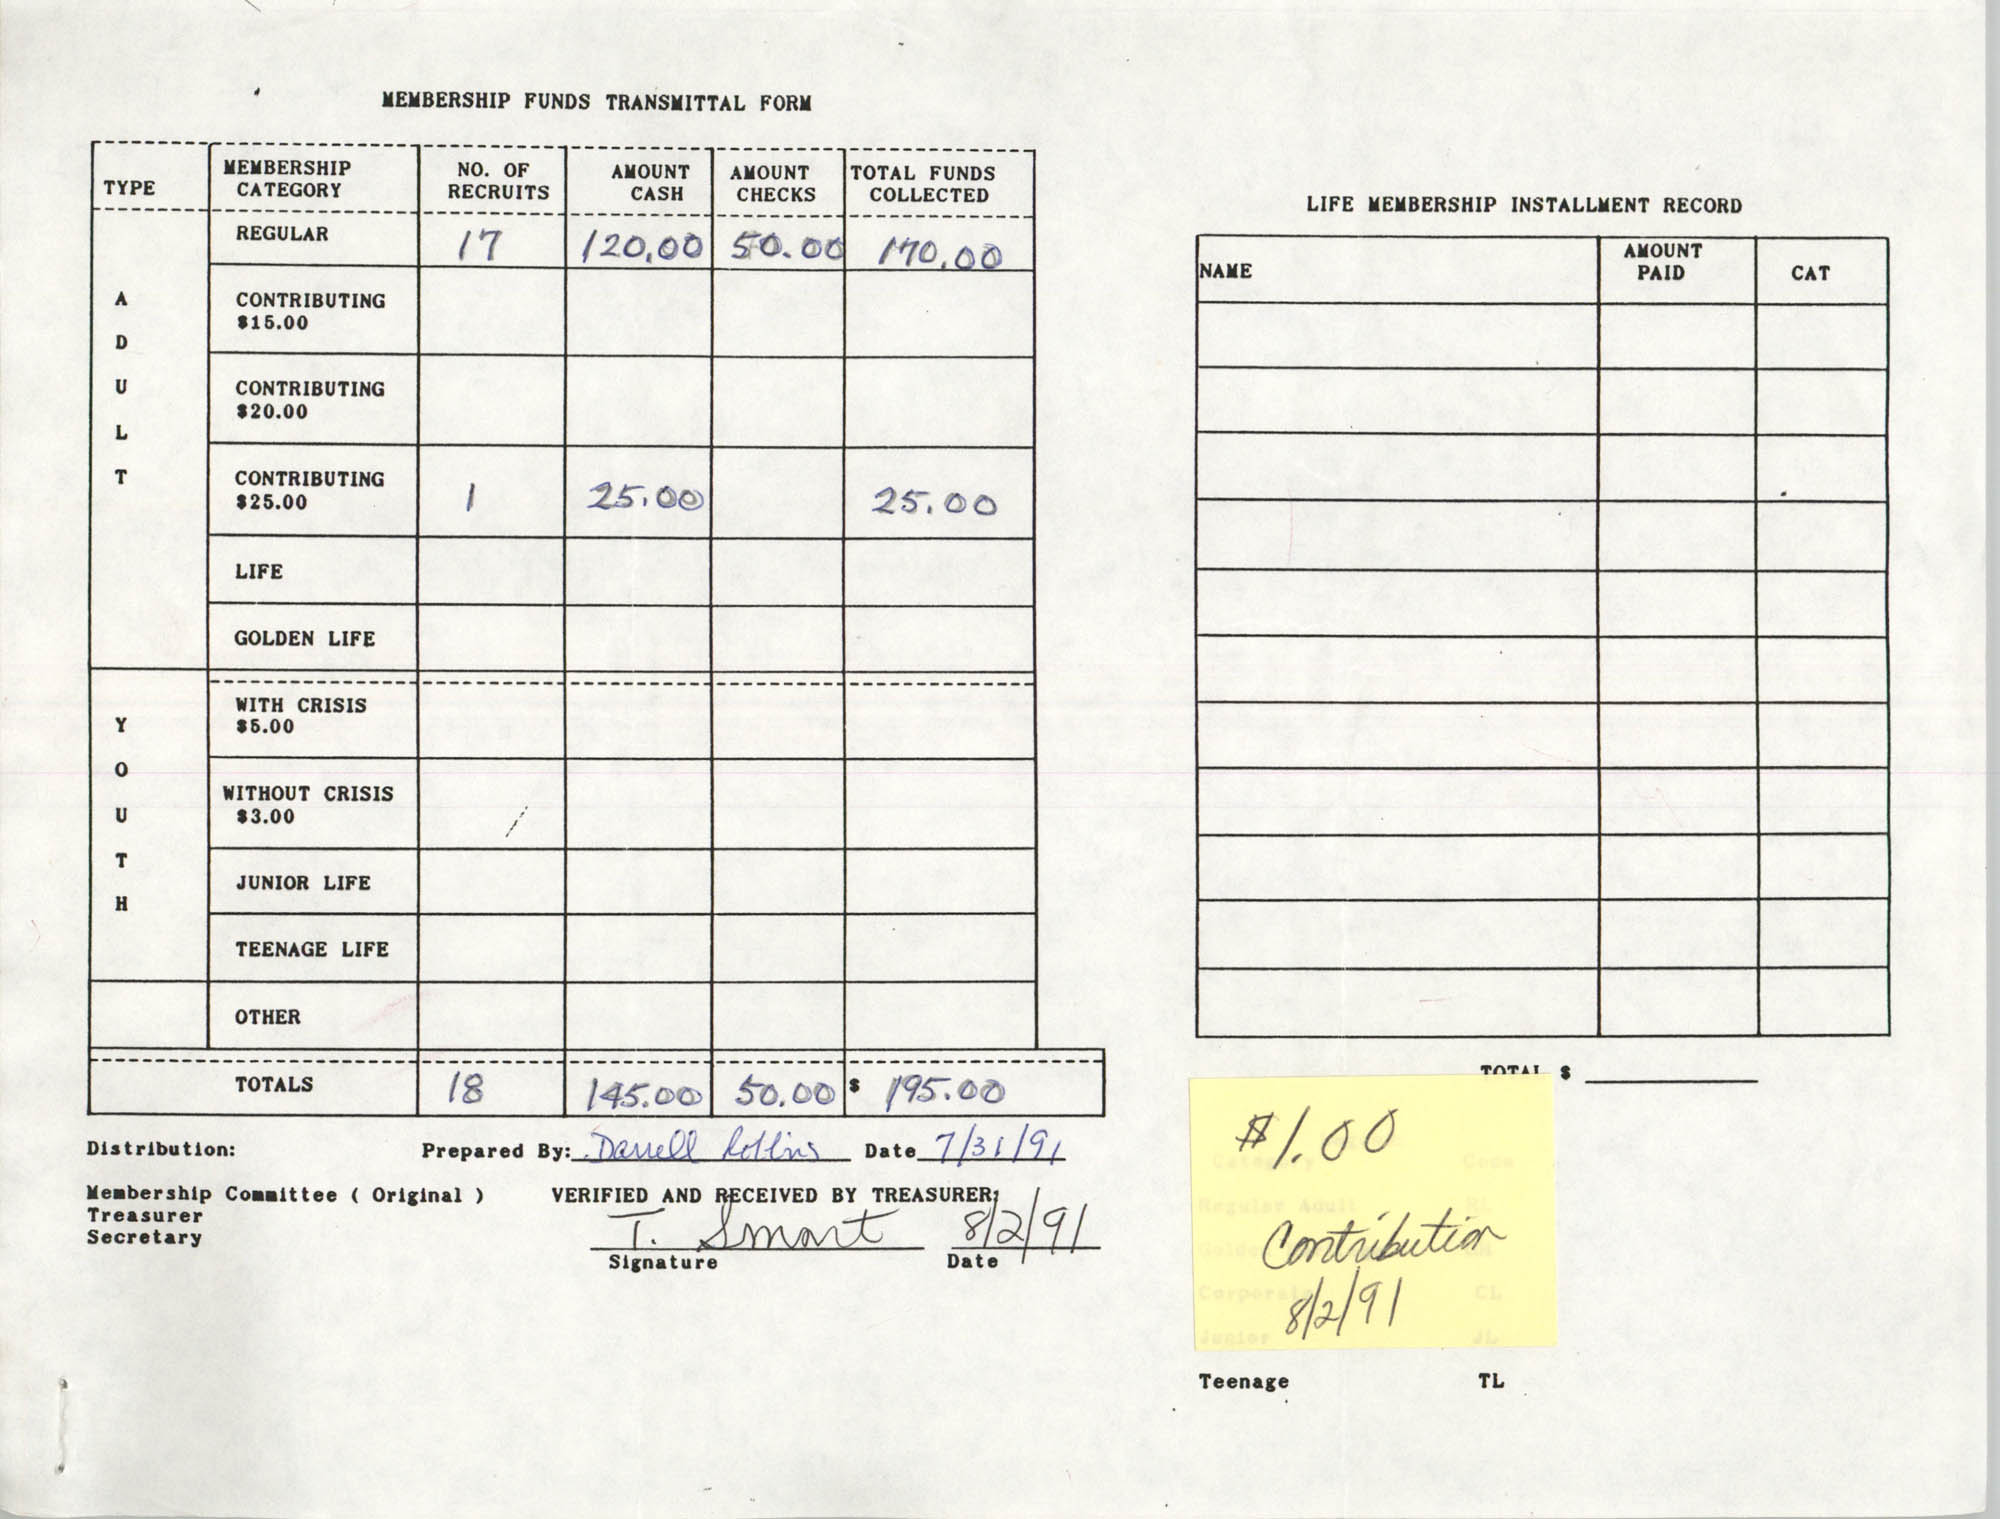 Charleston Branch of the NAACP Funds Transmittal Forms, August 1991, Page 1